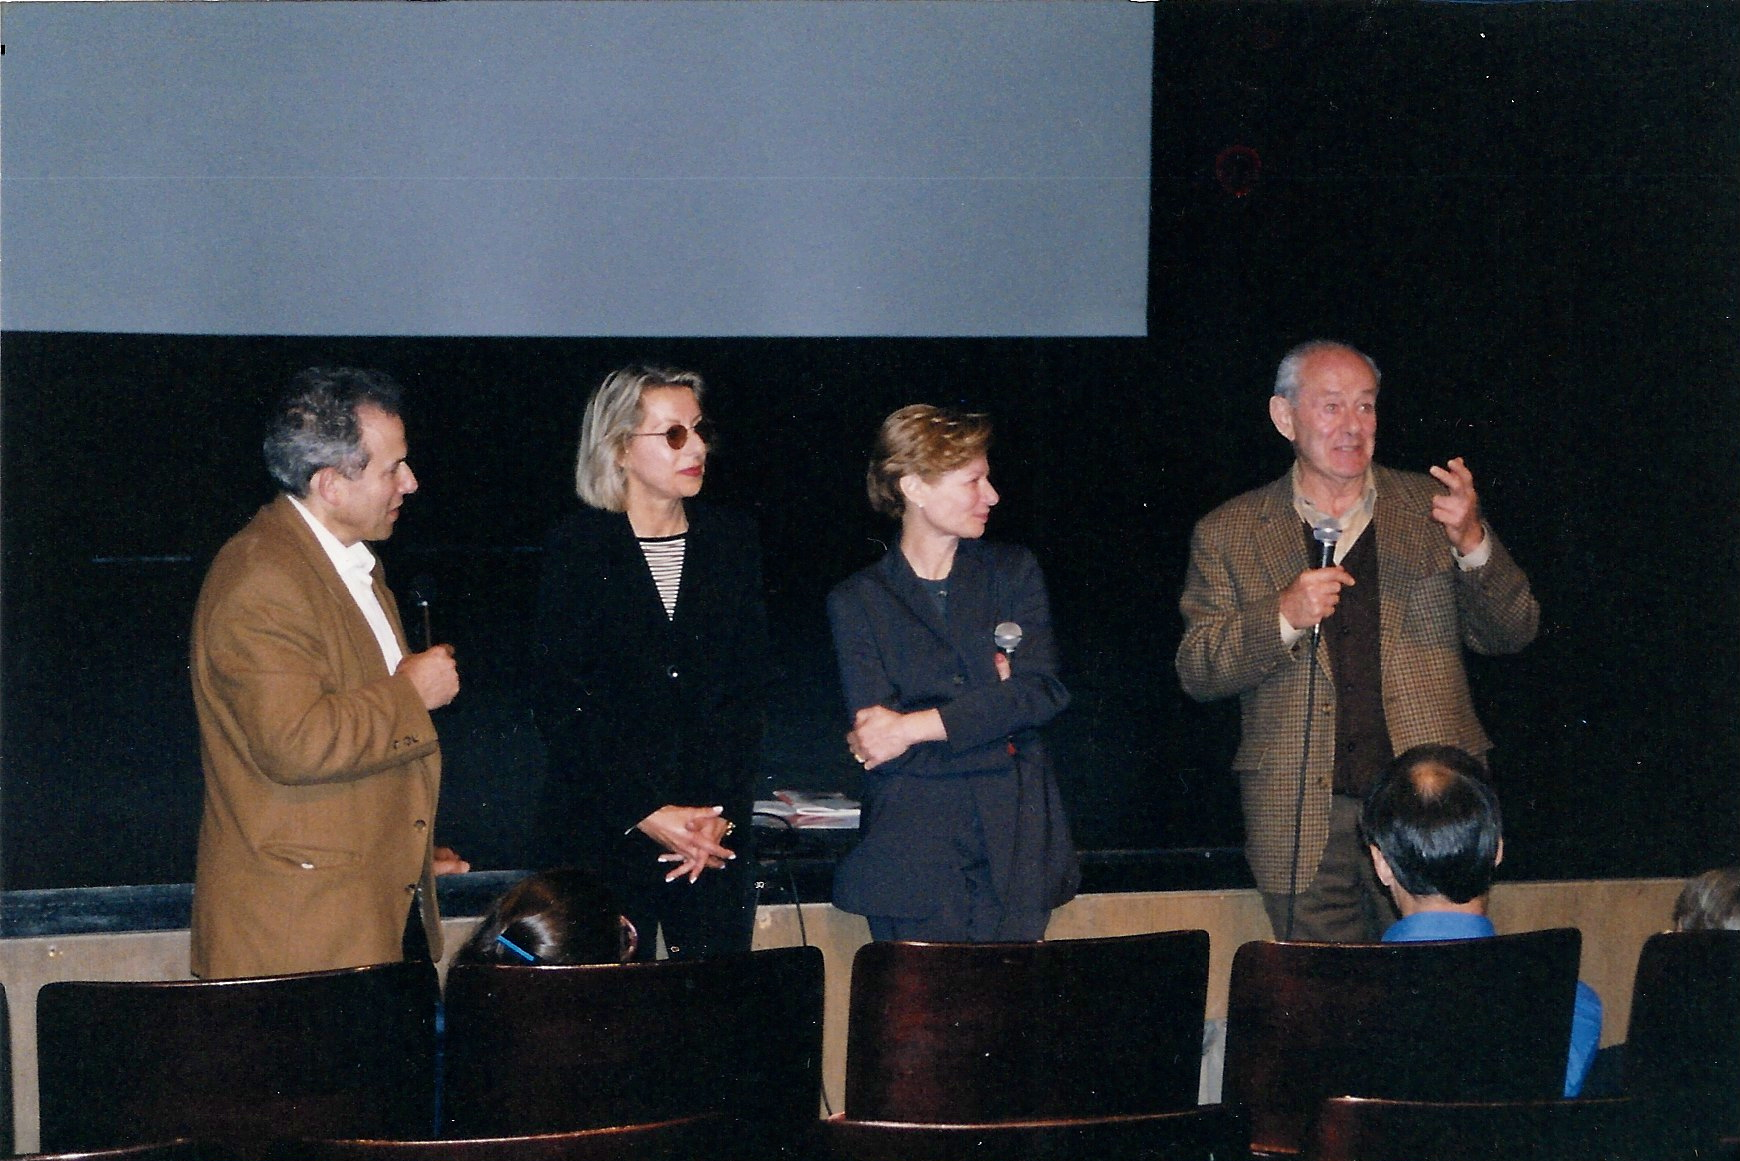 Producers Sonya Starr and Nina Rosenblum with Walter Rosenblum and Jerome Rudes, Director of the French-American Film Workshop at the film festival in New York